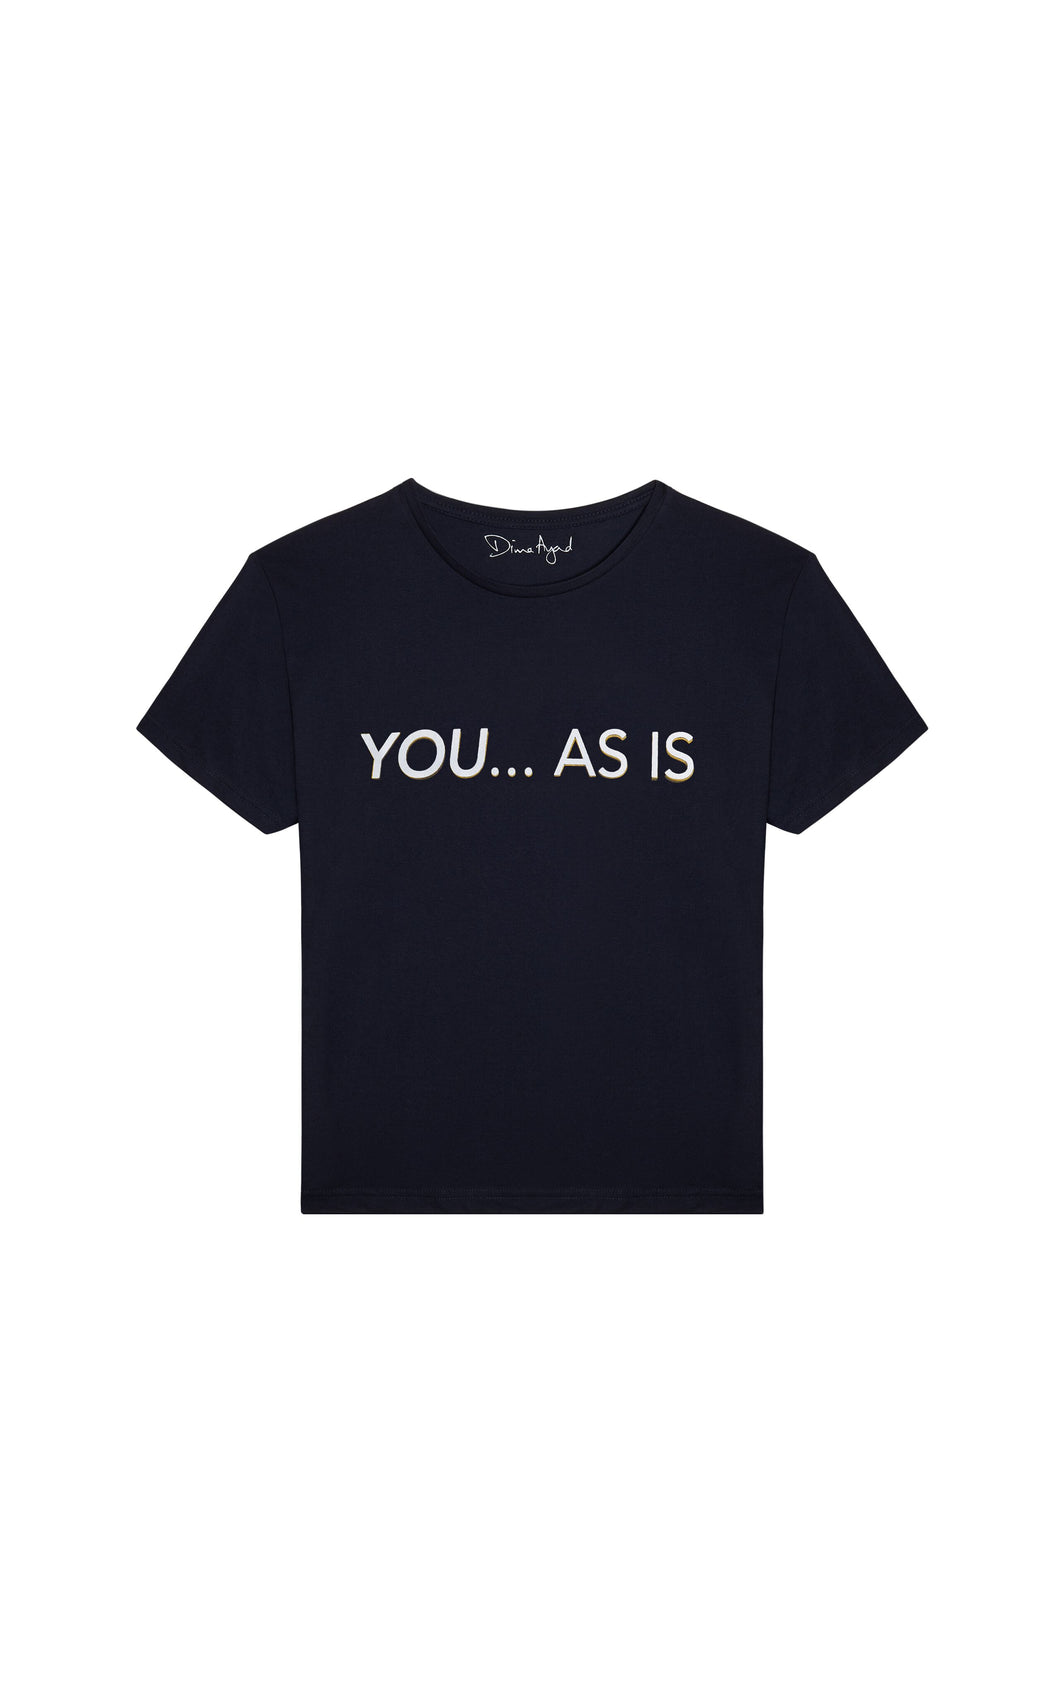 YOU...AS IS Navy Blue T-shirt with White Text, English